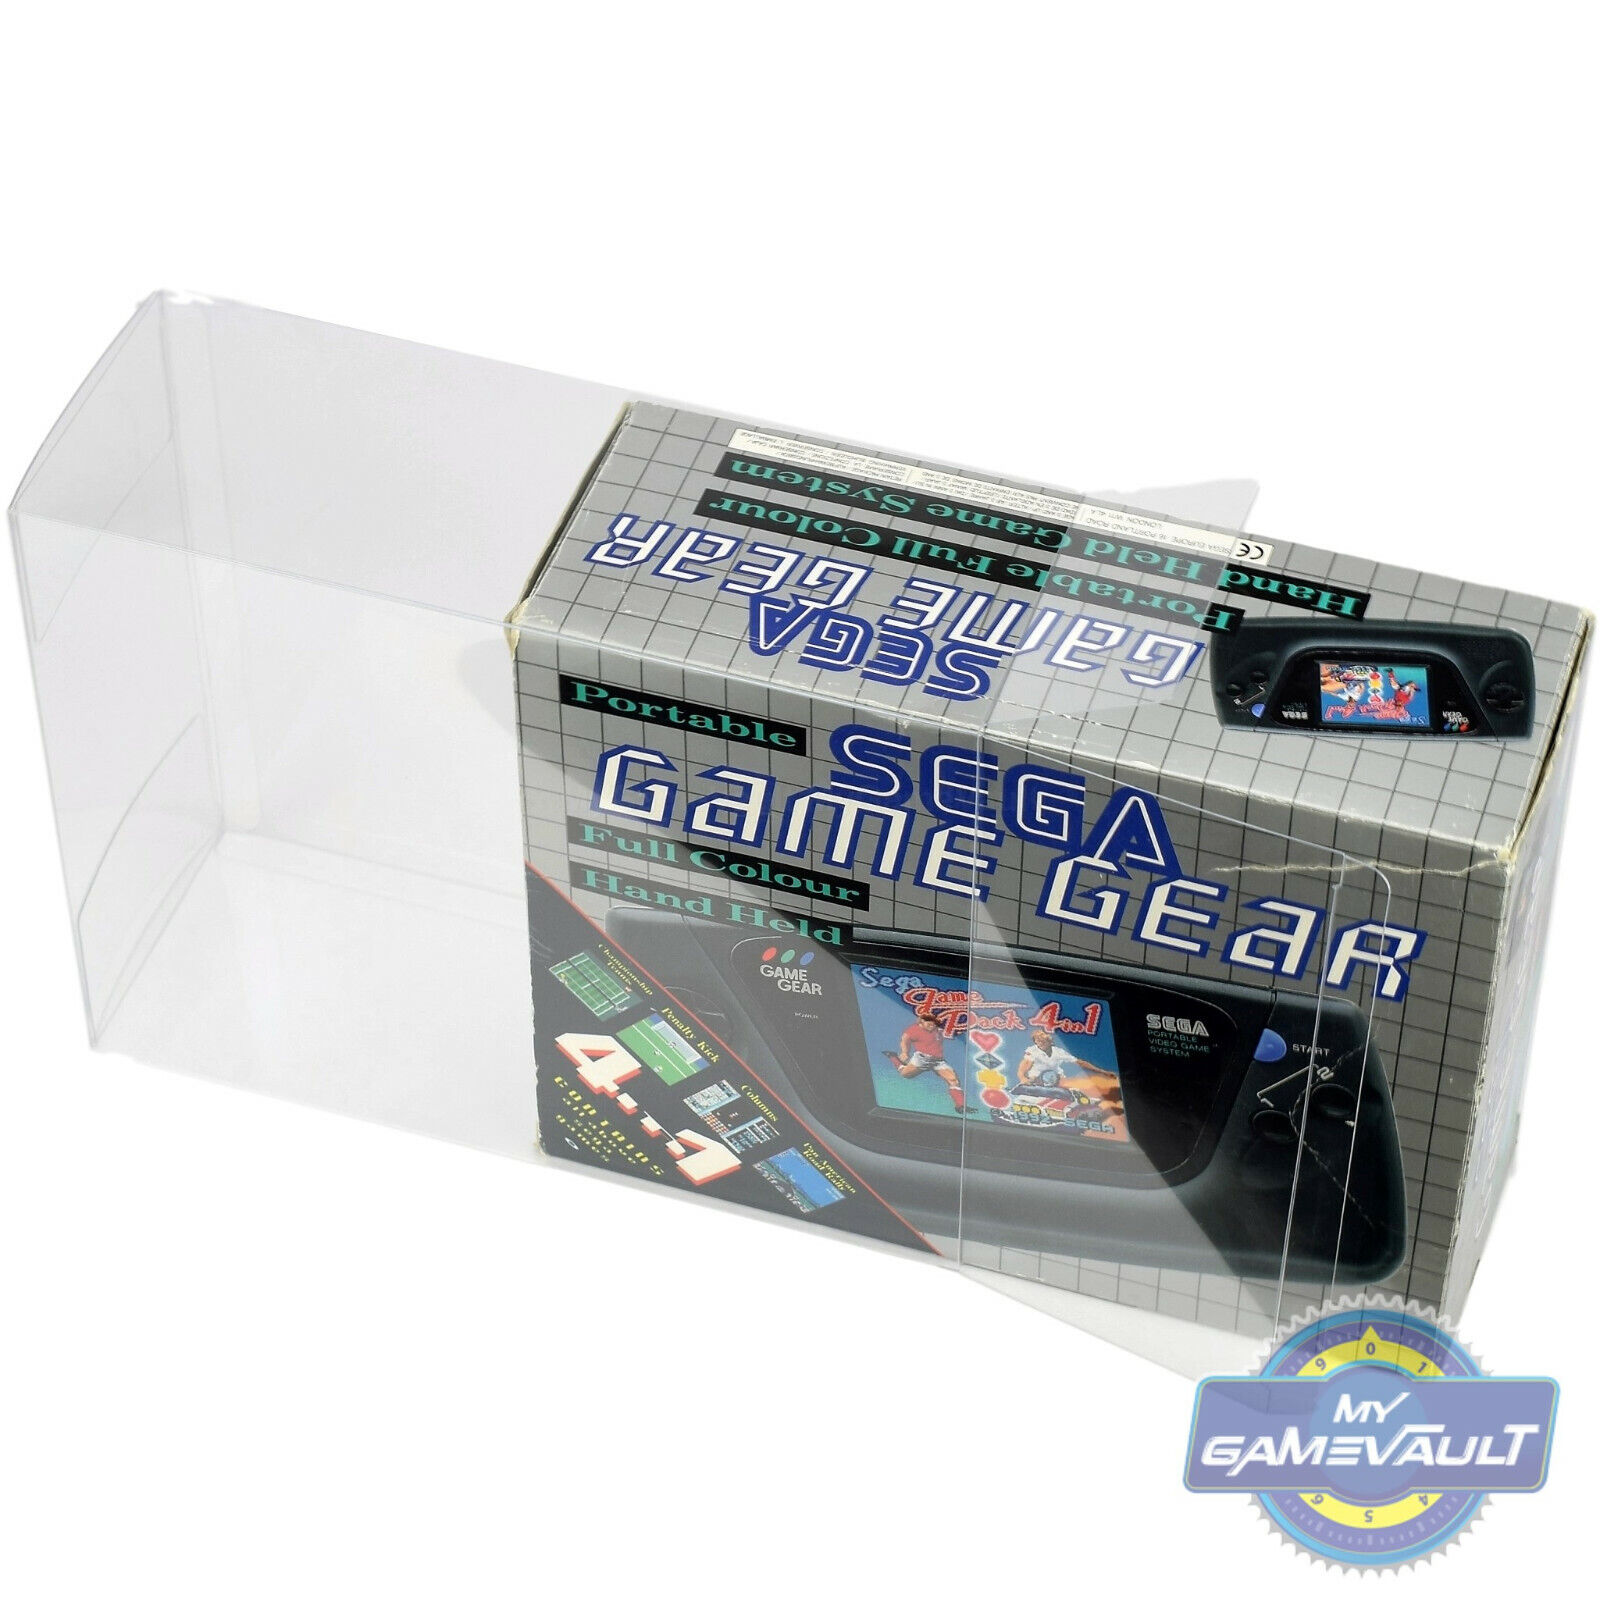 1 x BOX PROTECTOR for Sega Game Gear Console Strong 0.5mm Plastic DISPLAY CASE